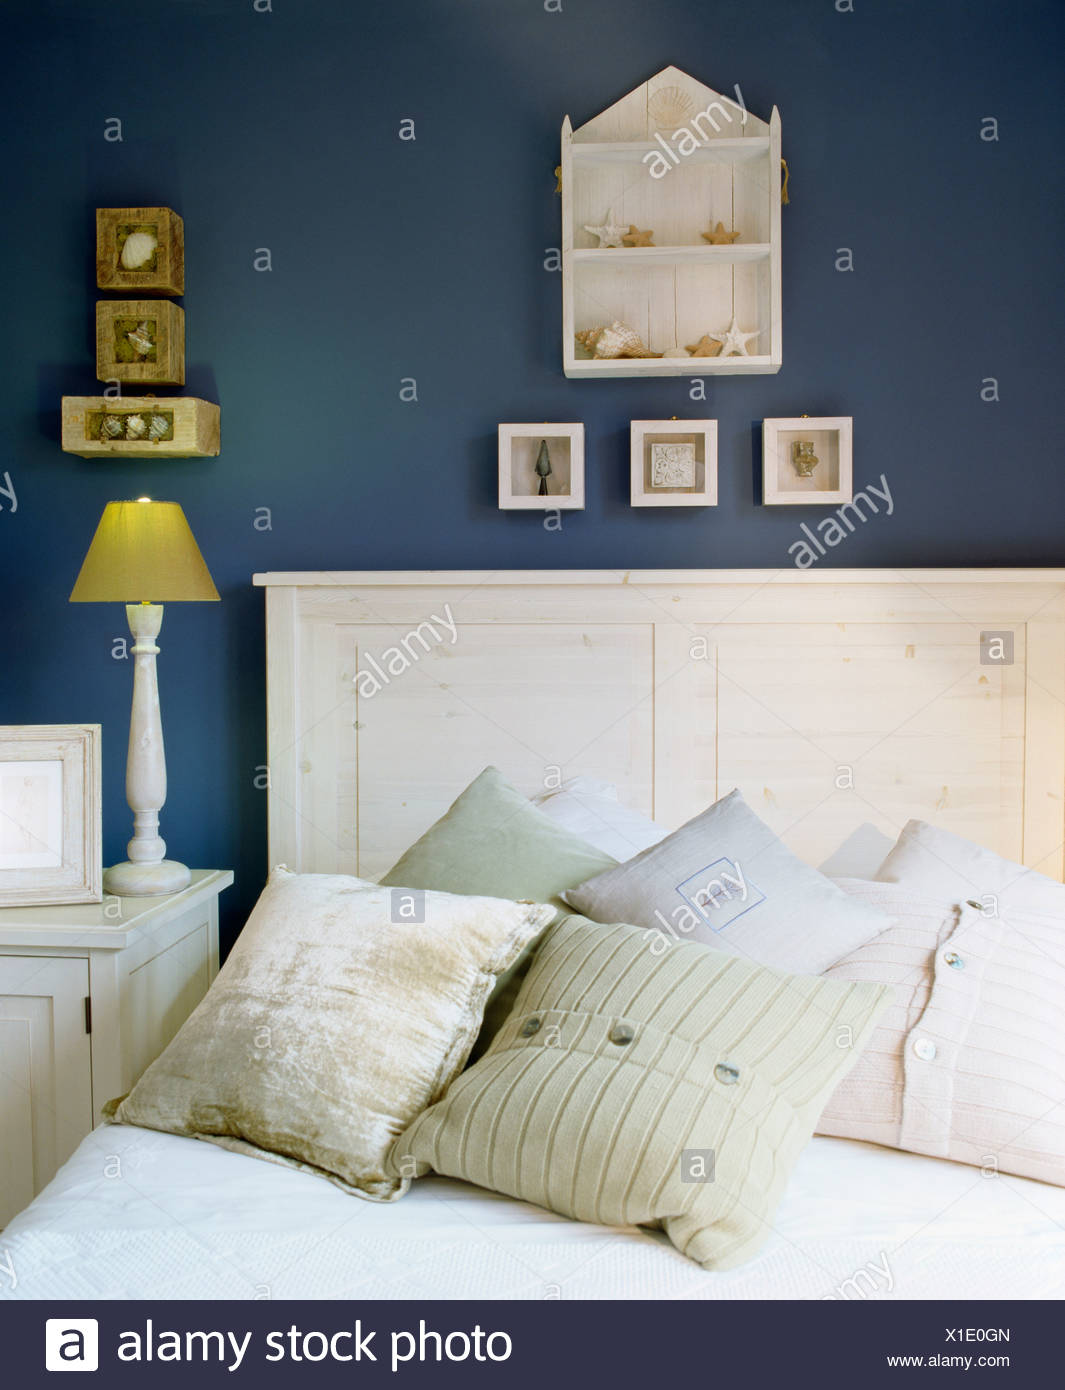 Small wooden shelf unit and pictures above white wooden bed with silk cushions in dark blue